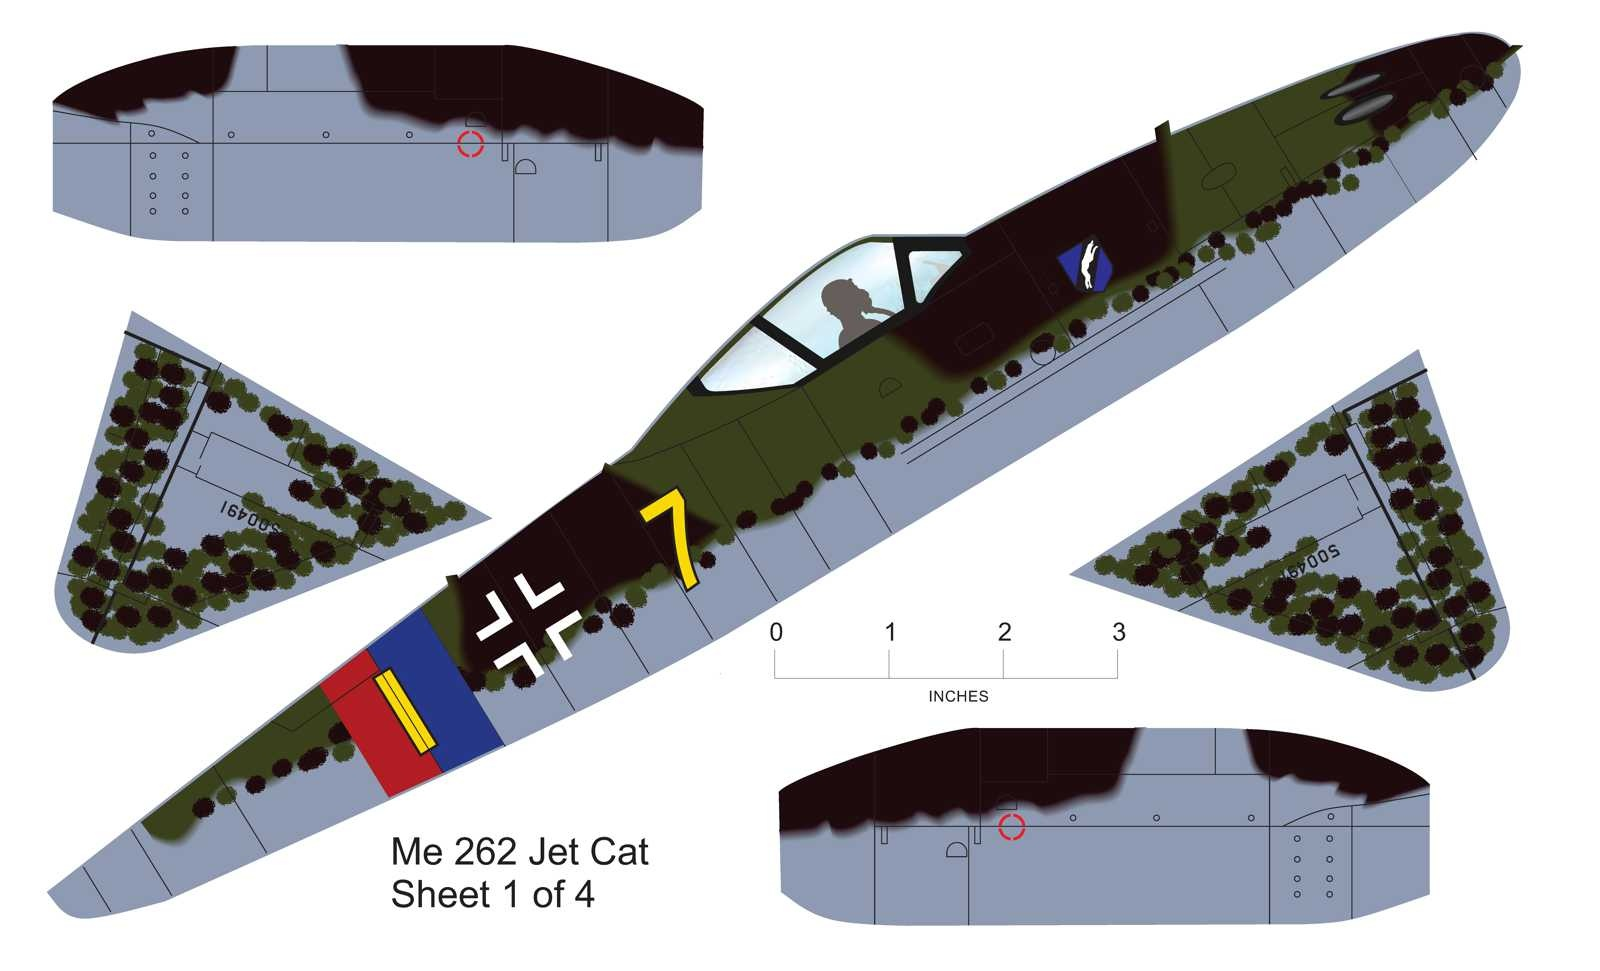 https://0201.nccdn.net/4_2/000/000/018/5fa/Me-262-Jet-Cat-covering-layout-page-1600x971.jpg